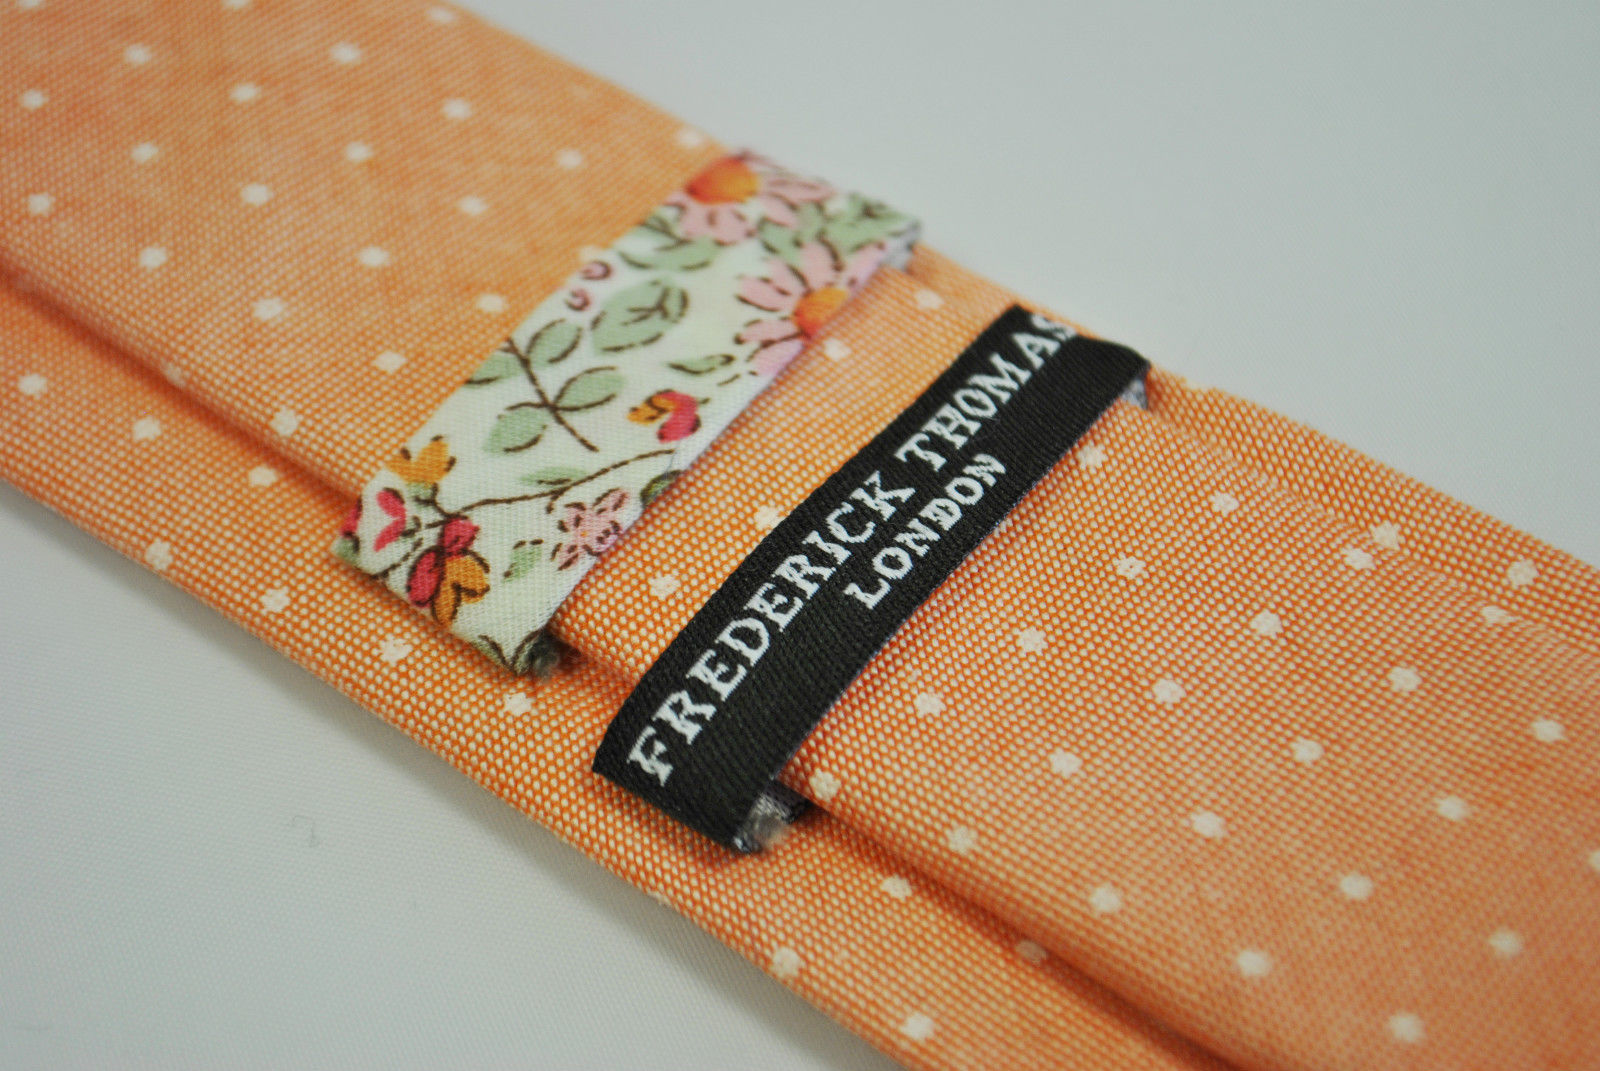 Frederick Thomas peach/orange spotted tie 100% cotton linen FT2177